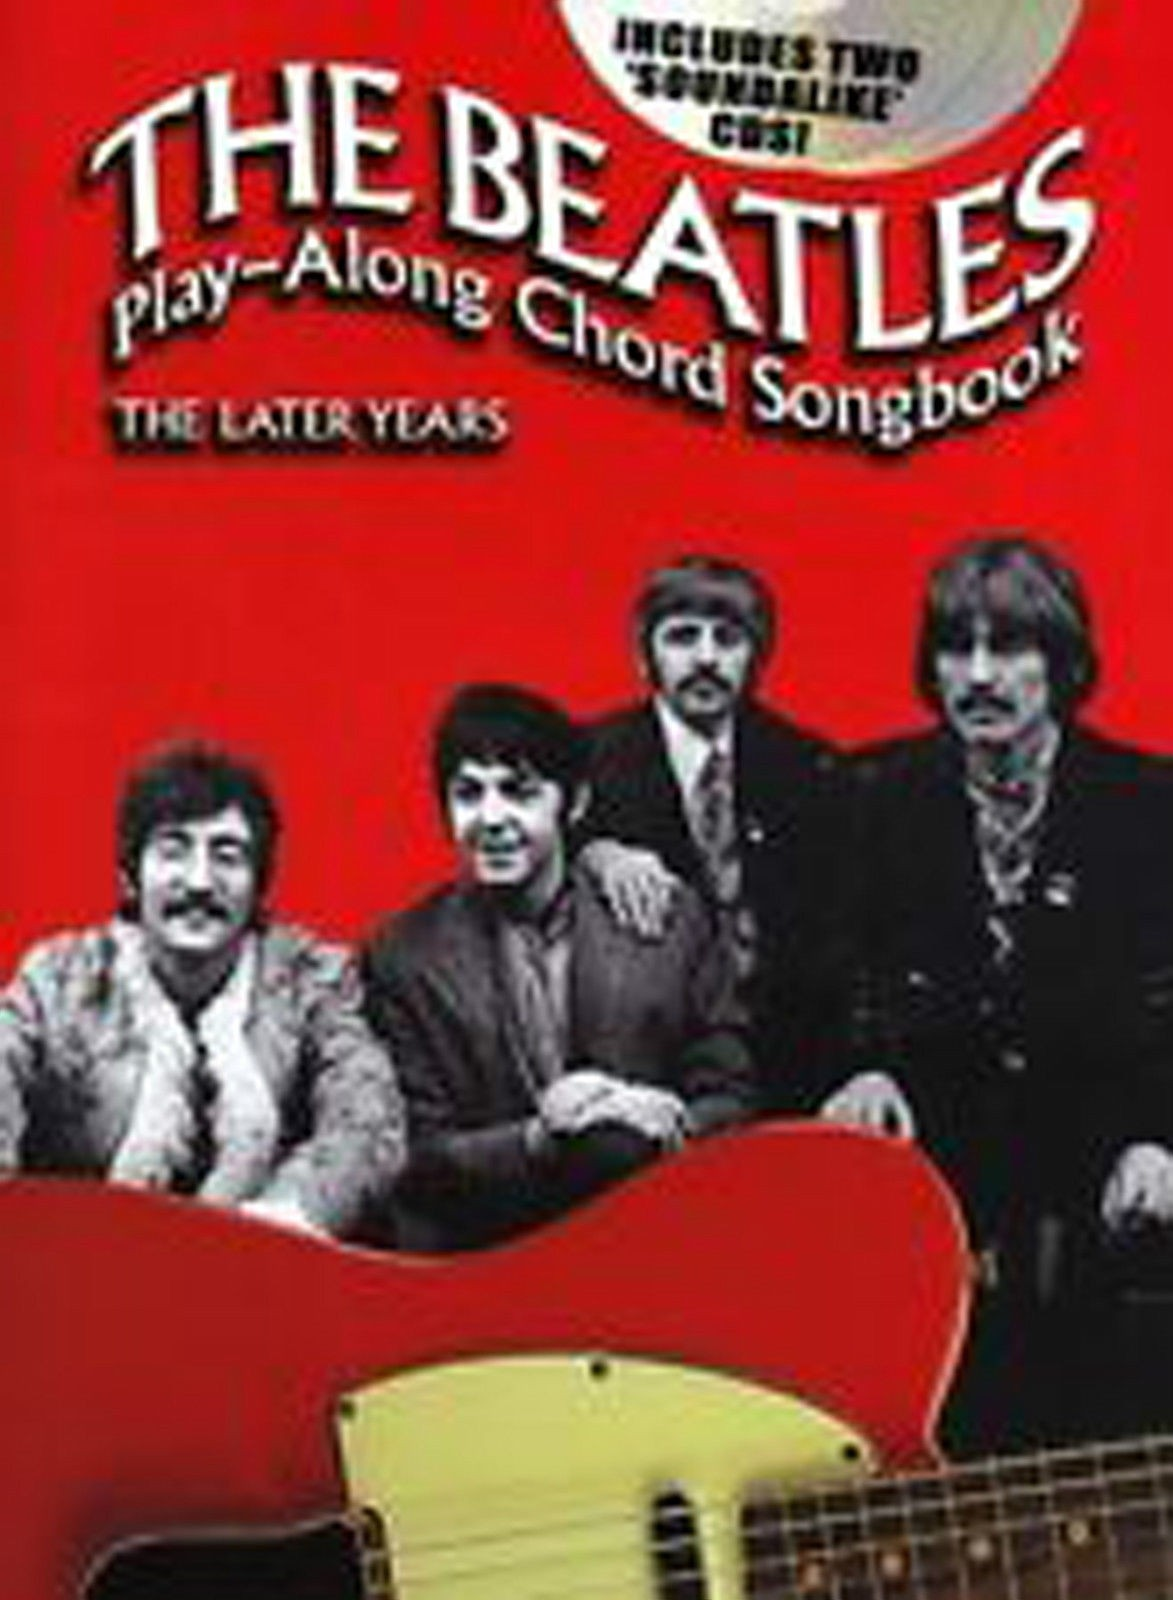 The Beatles Play-Along Chord Songbook Guitar The Later Years Book CDs B42 S163